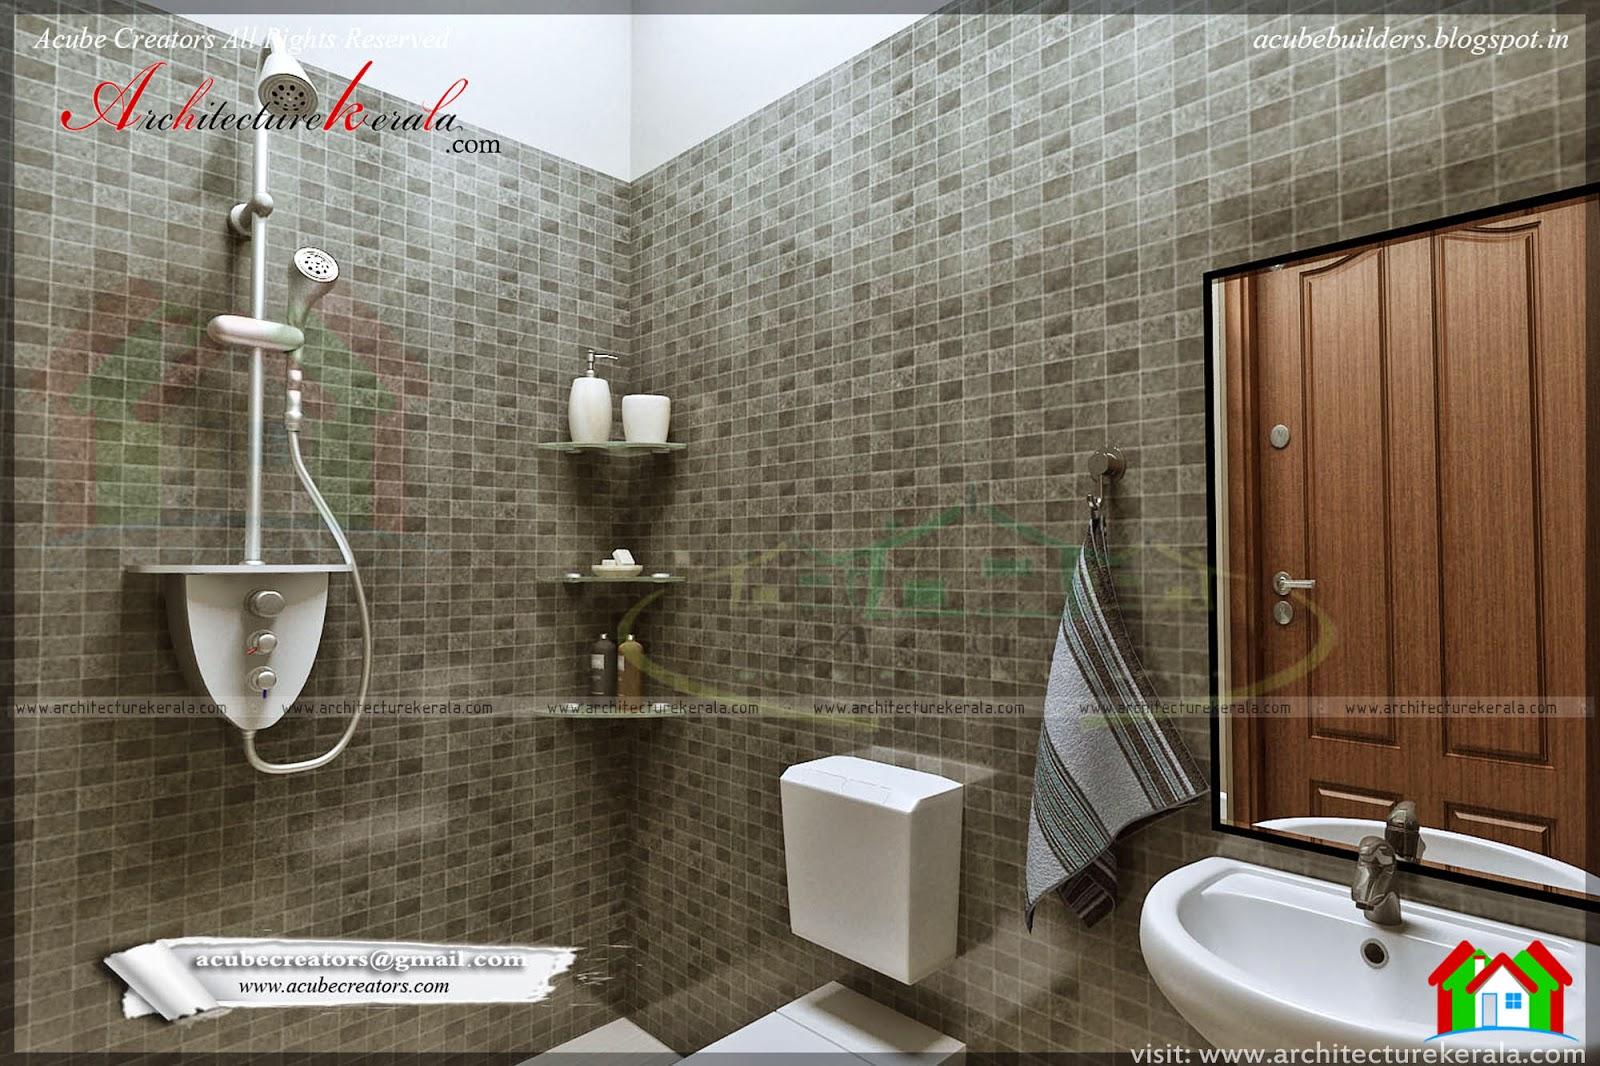 architecture kerala bathroom - Bathroom Designs Kerala Style